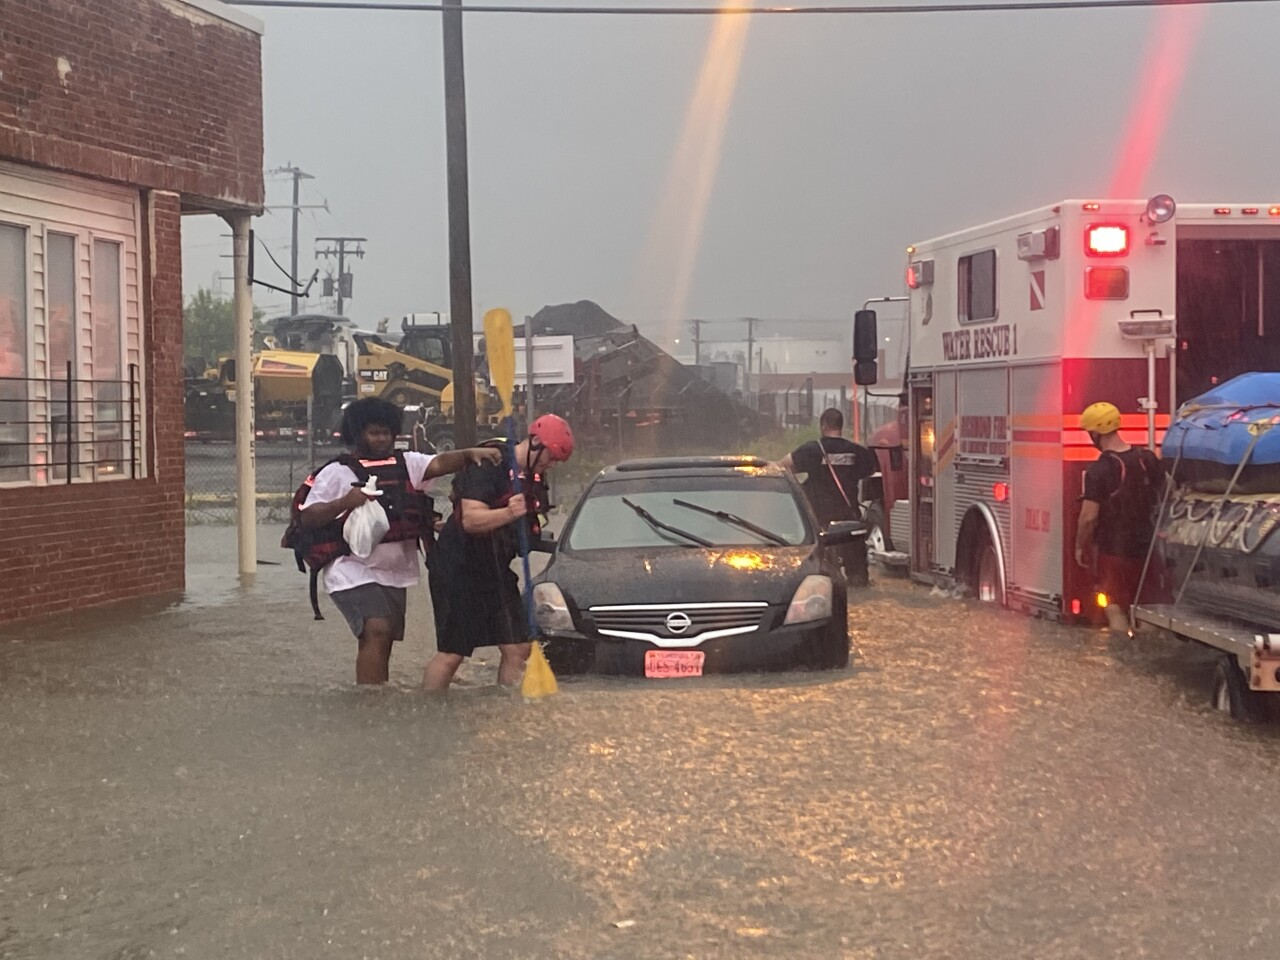 Richmond Fire rescues 19 people from cars amid flash floods